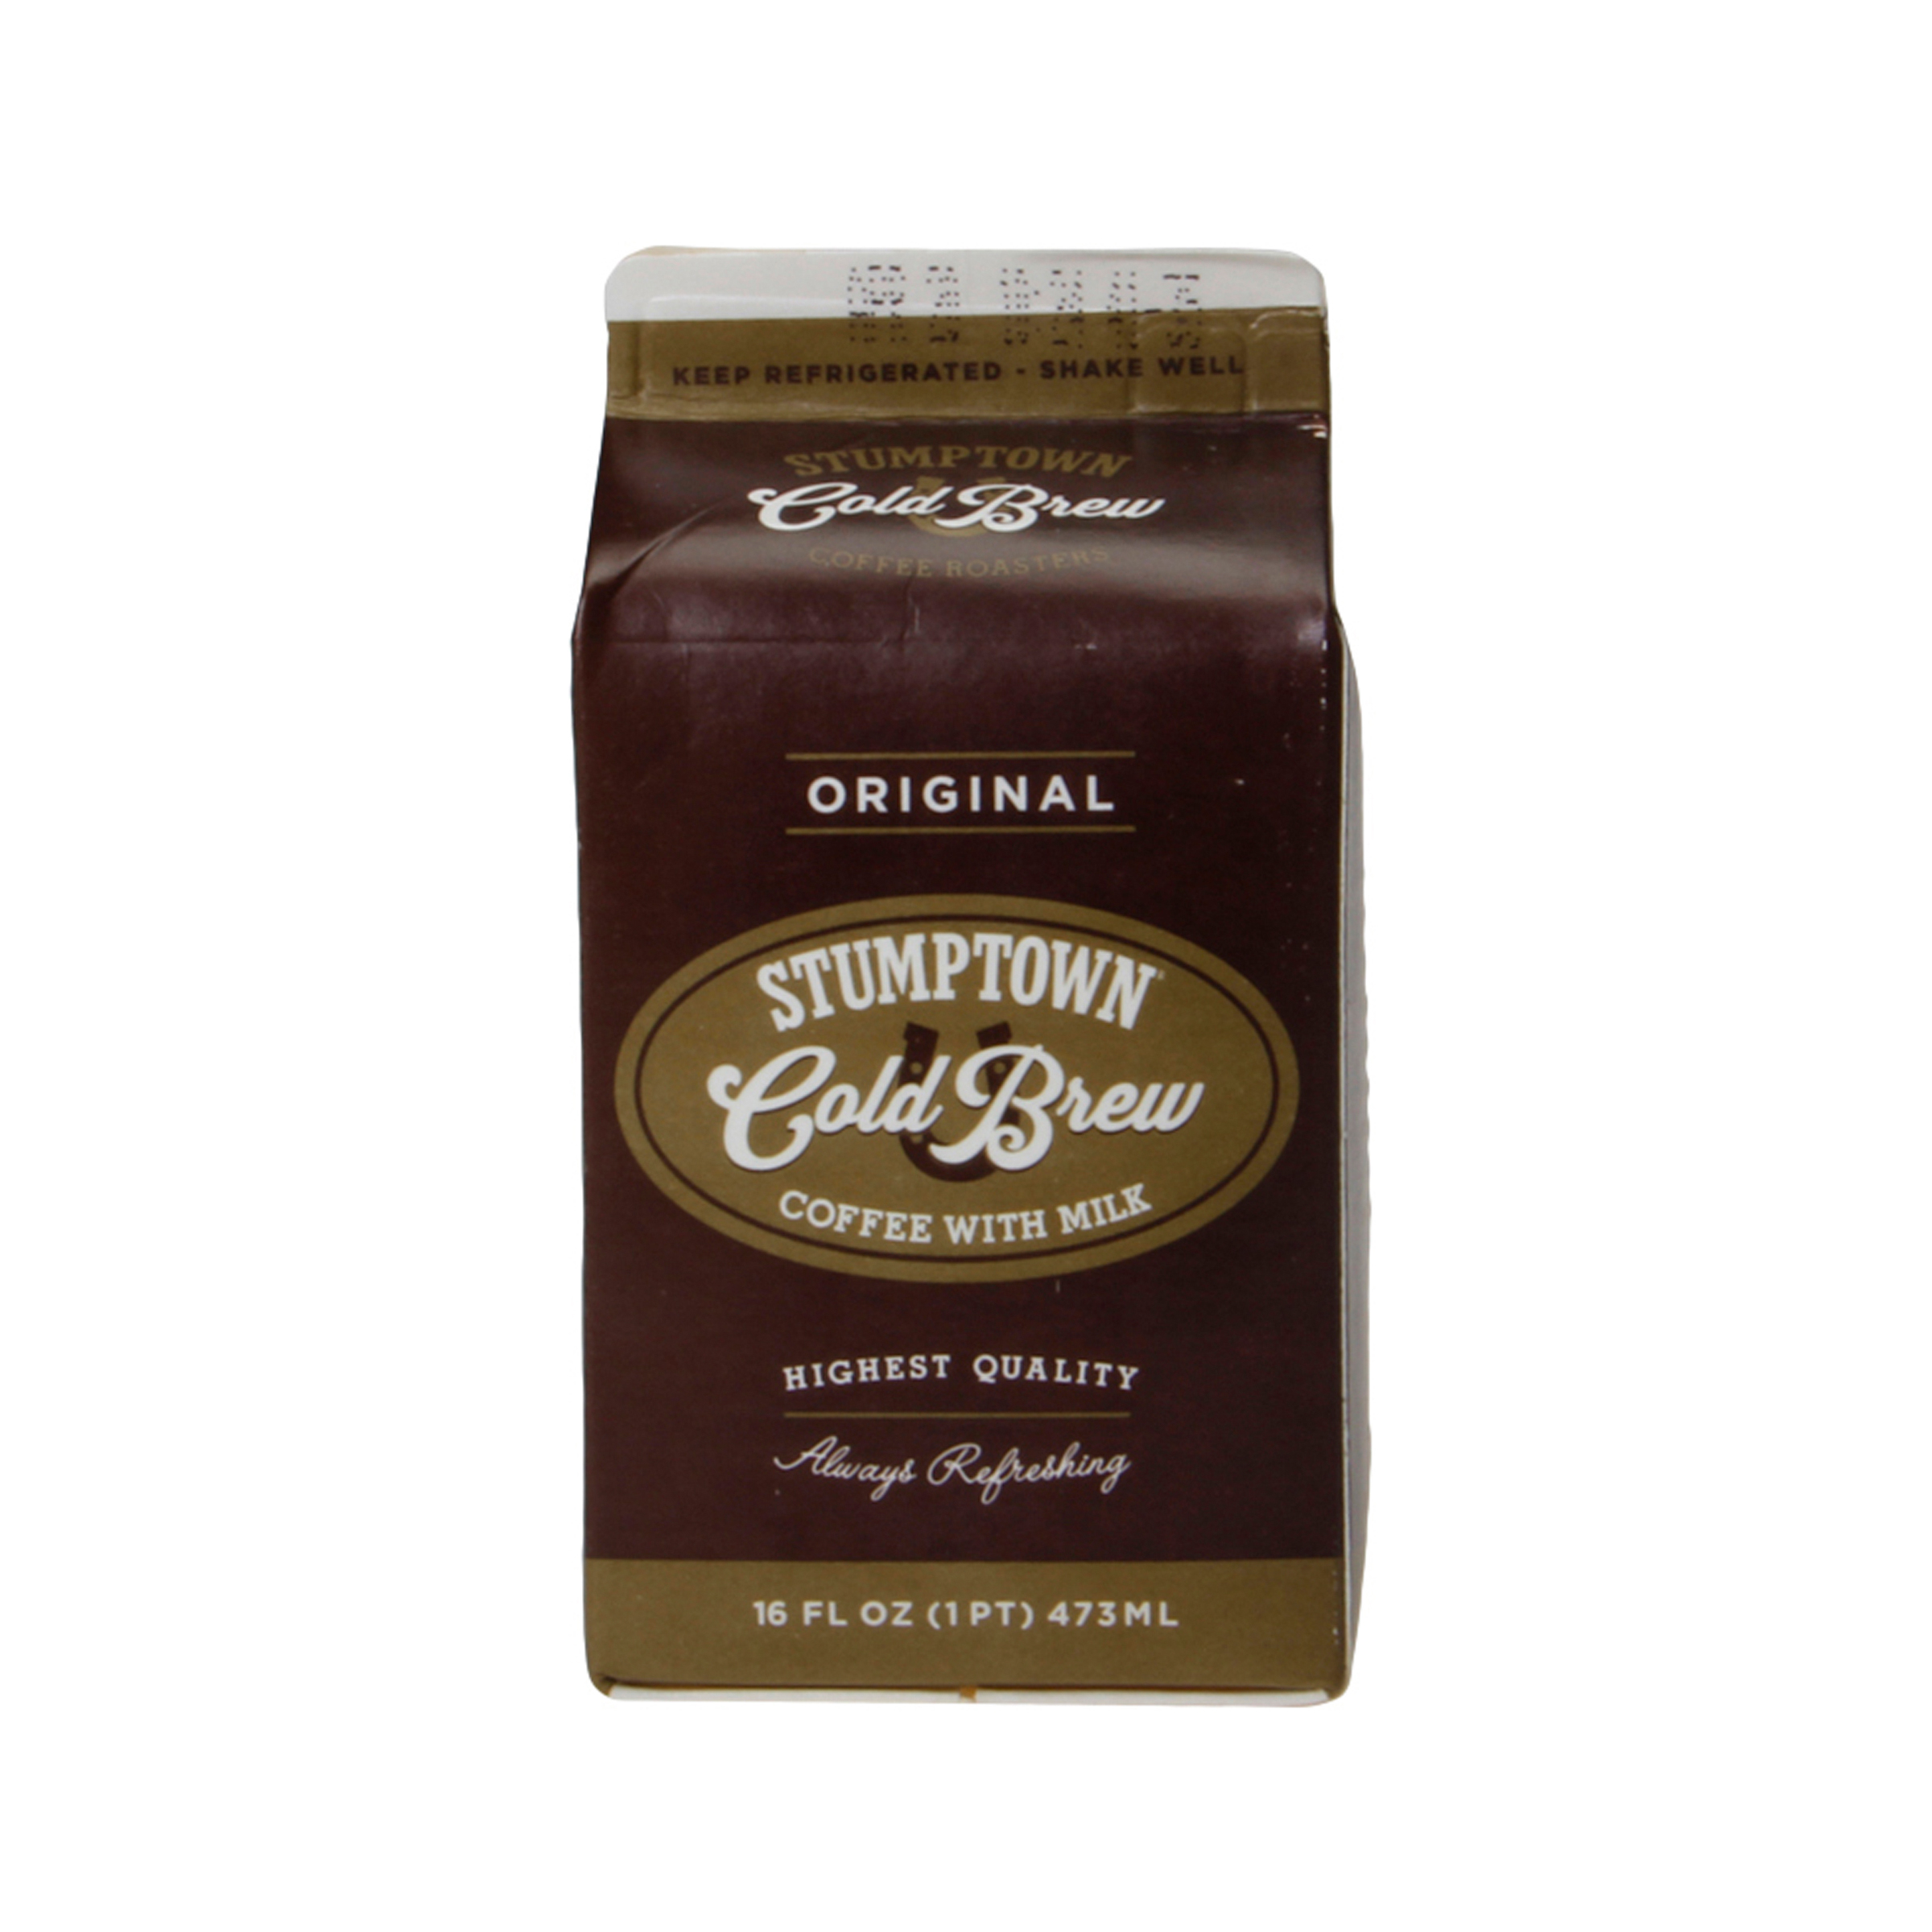 Cold Brew Coffee With Milk 16 Fl Oz Stumptown Coffee Roasters Whole Foods Market